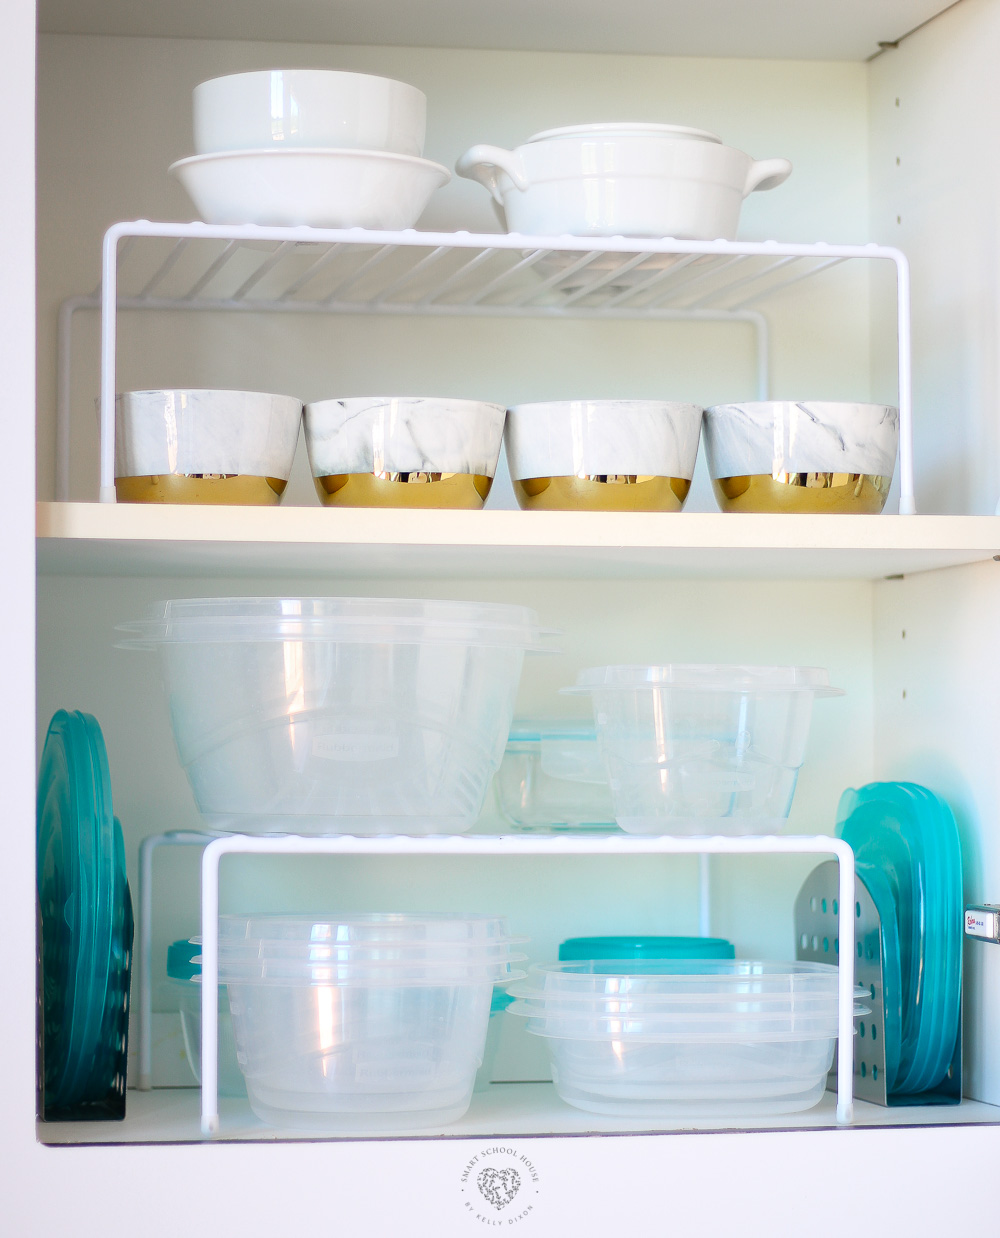 Kitchen Cabinet Storage - I found a great way to keep the food storage containers and their lids organized.